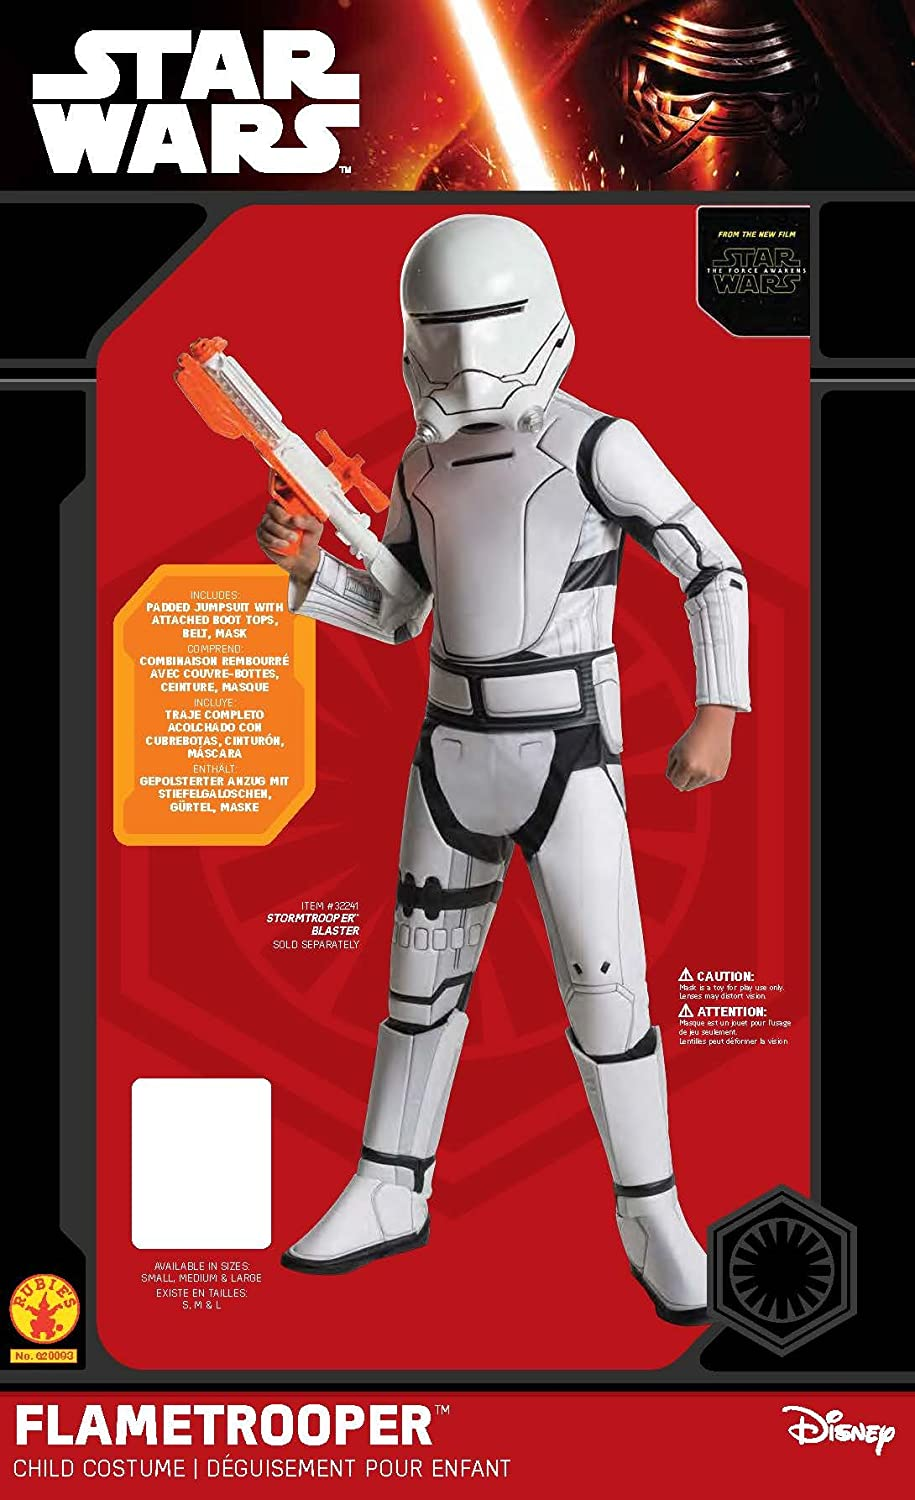 Star Wars: The Force Awakens Childs Super Deluxe Flametrooper Costume, Medium